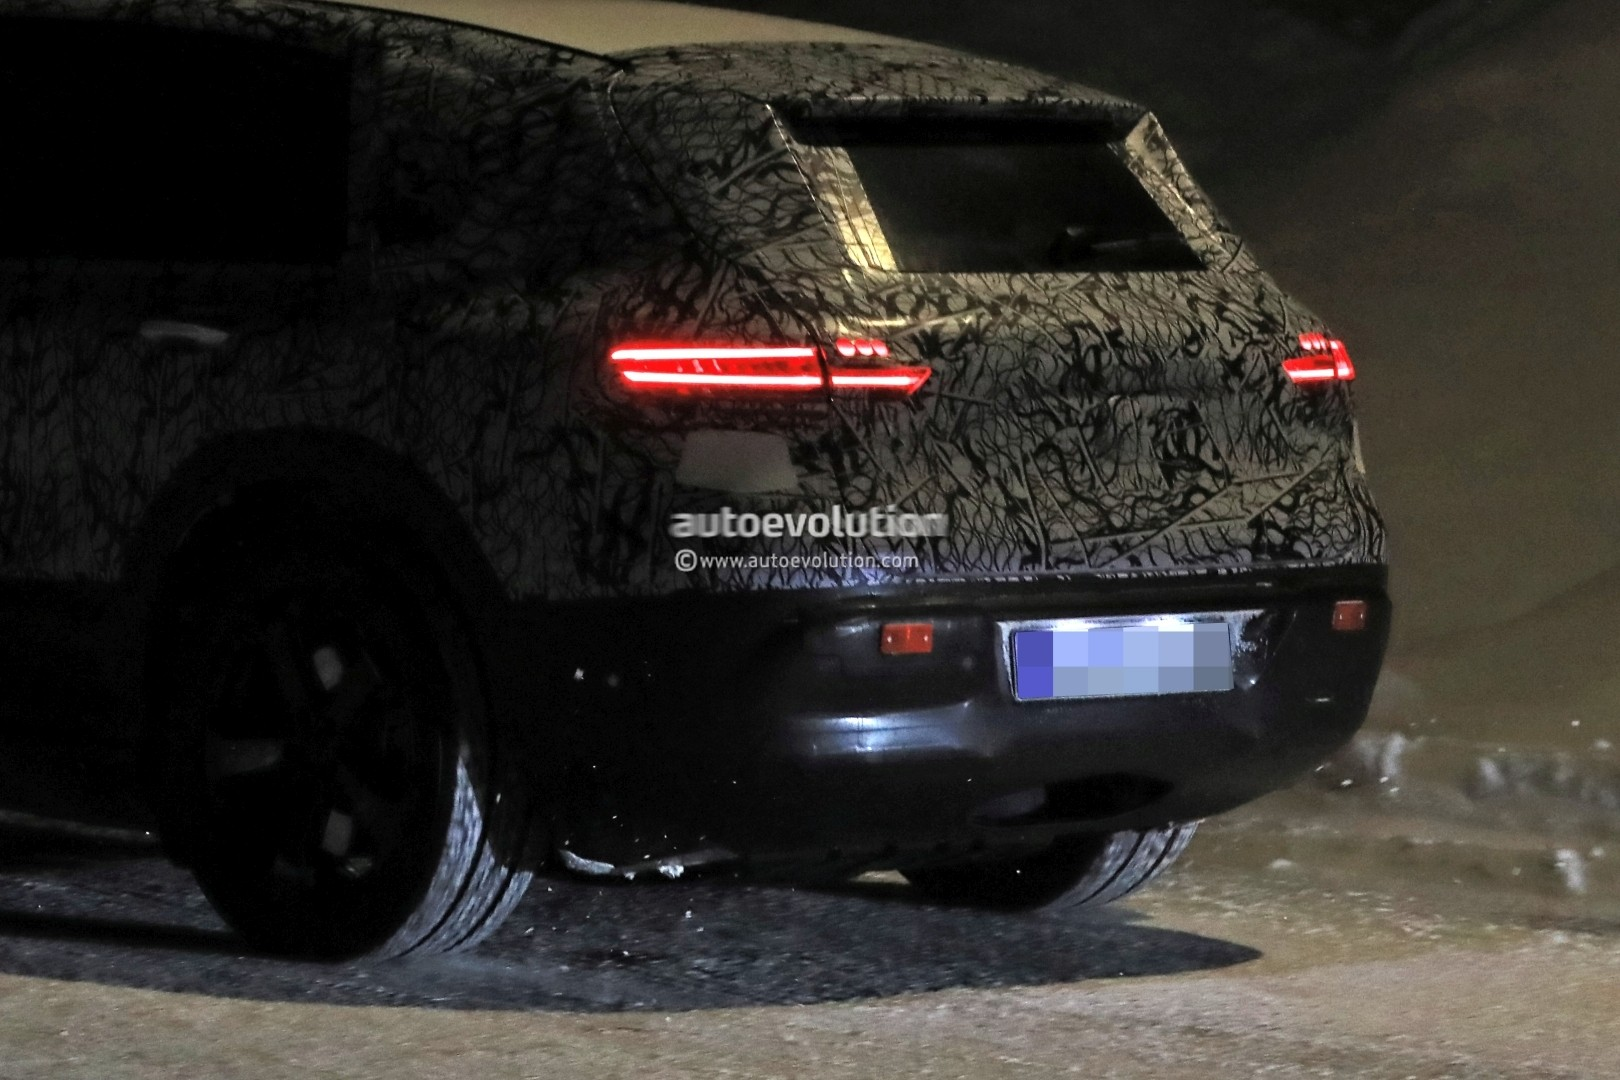 2020 Mercedes Benz Eqc Electric Suv Makes Spyshot Debut